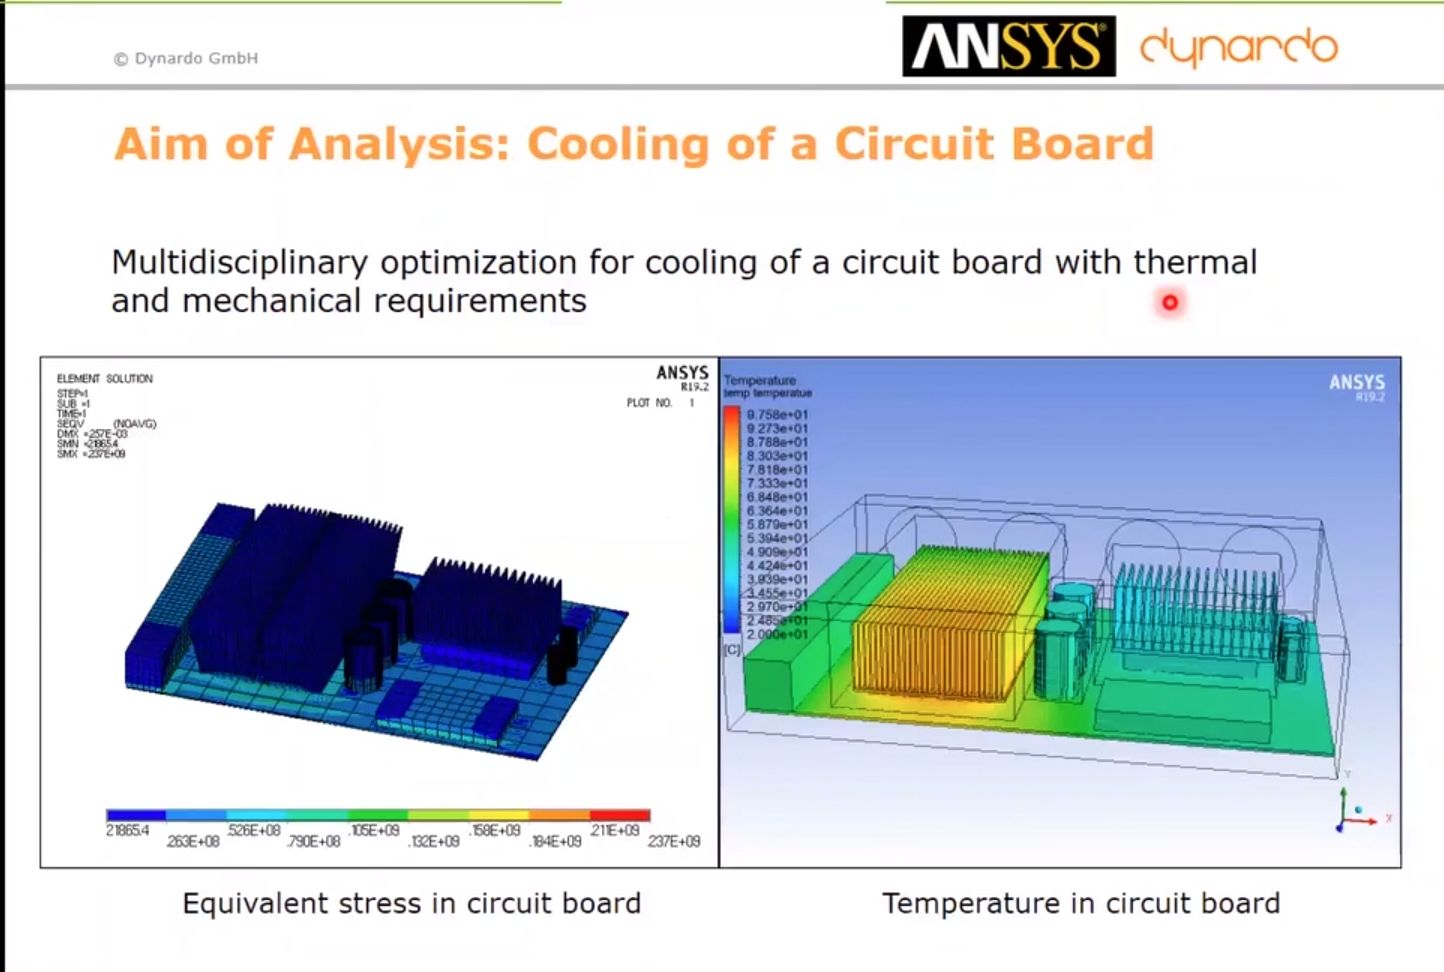 ANSYS Archives - Wilde Analysis Ltd : Engineering simulation